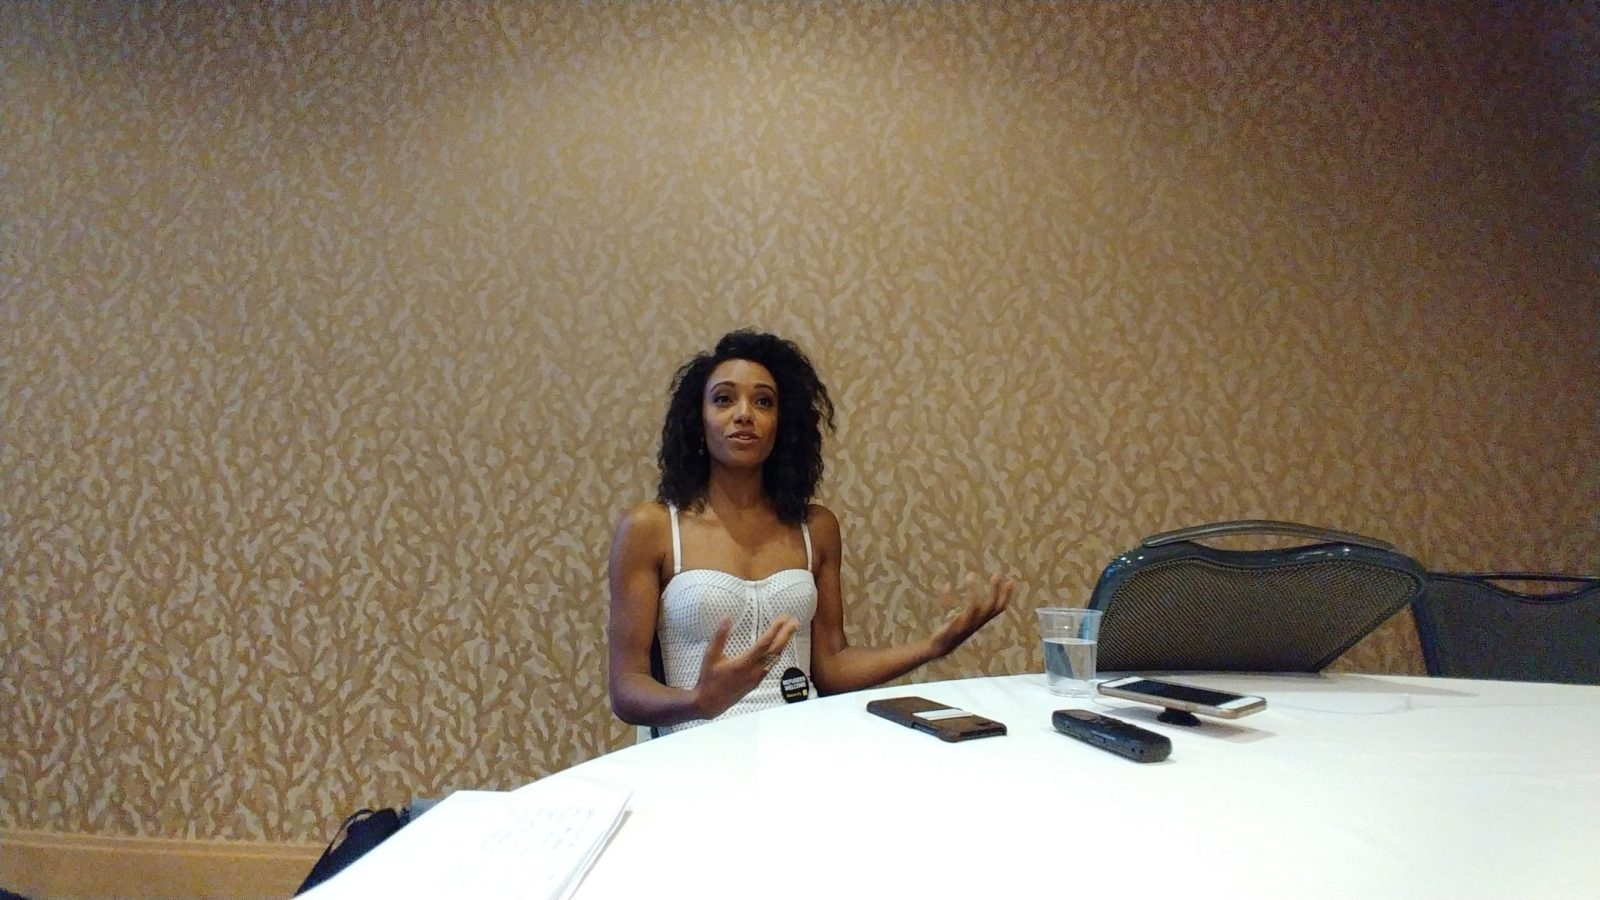 SDCC 2018 - Maisie Richardson-Sellers